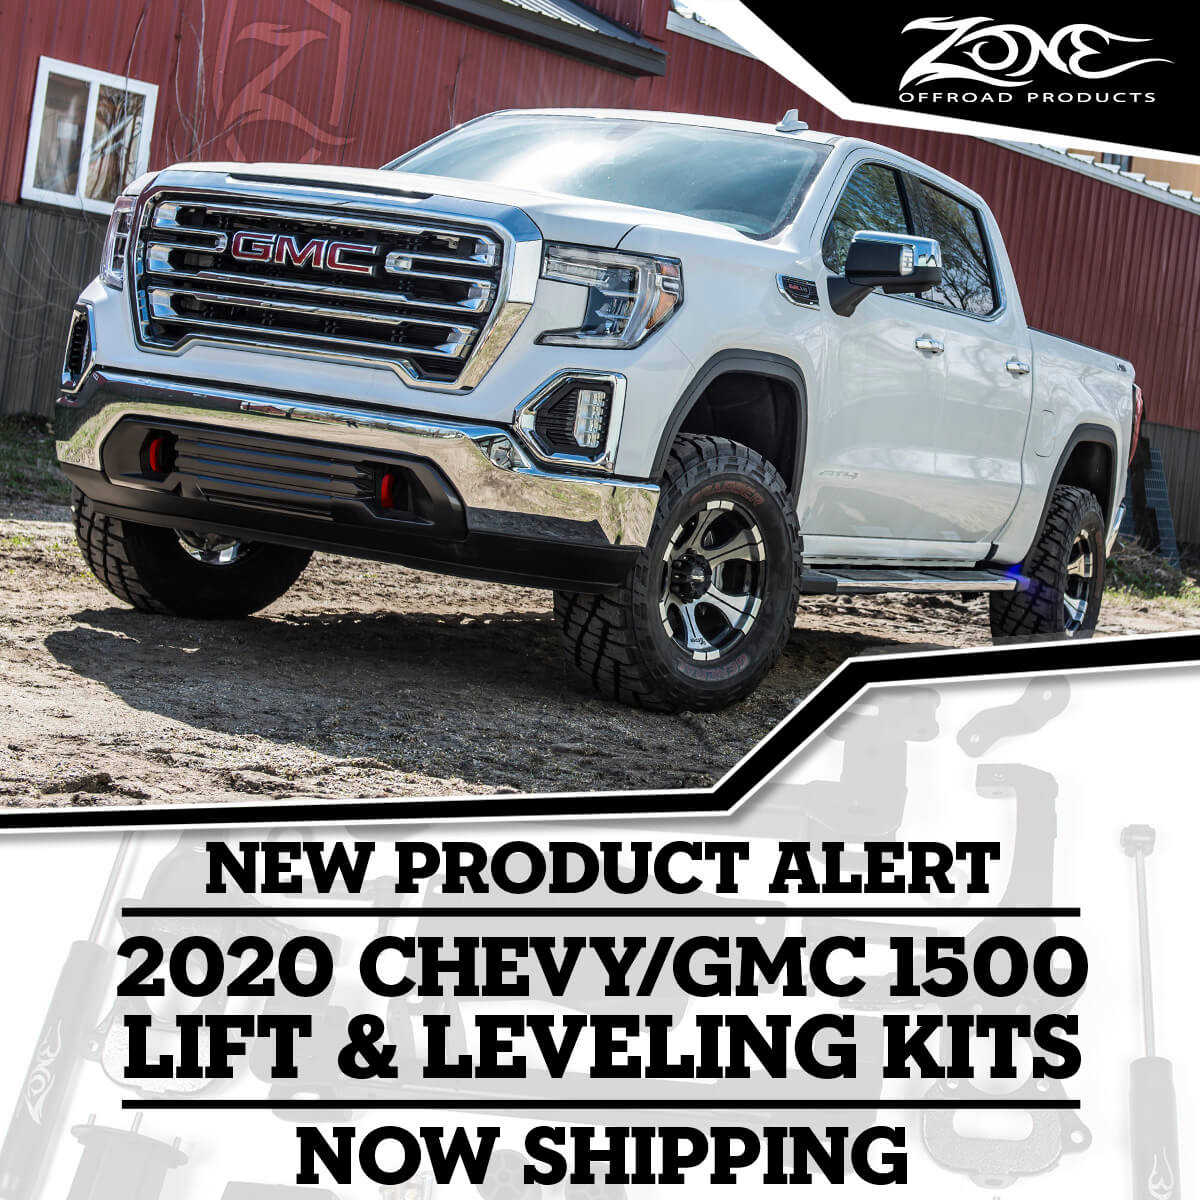 Lift Kits For The 2020 Chevy Gmc 1500 Trucks Npa 157 Zone Offroad News